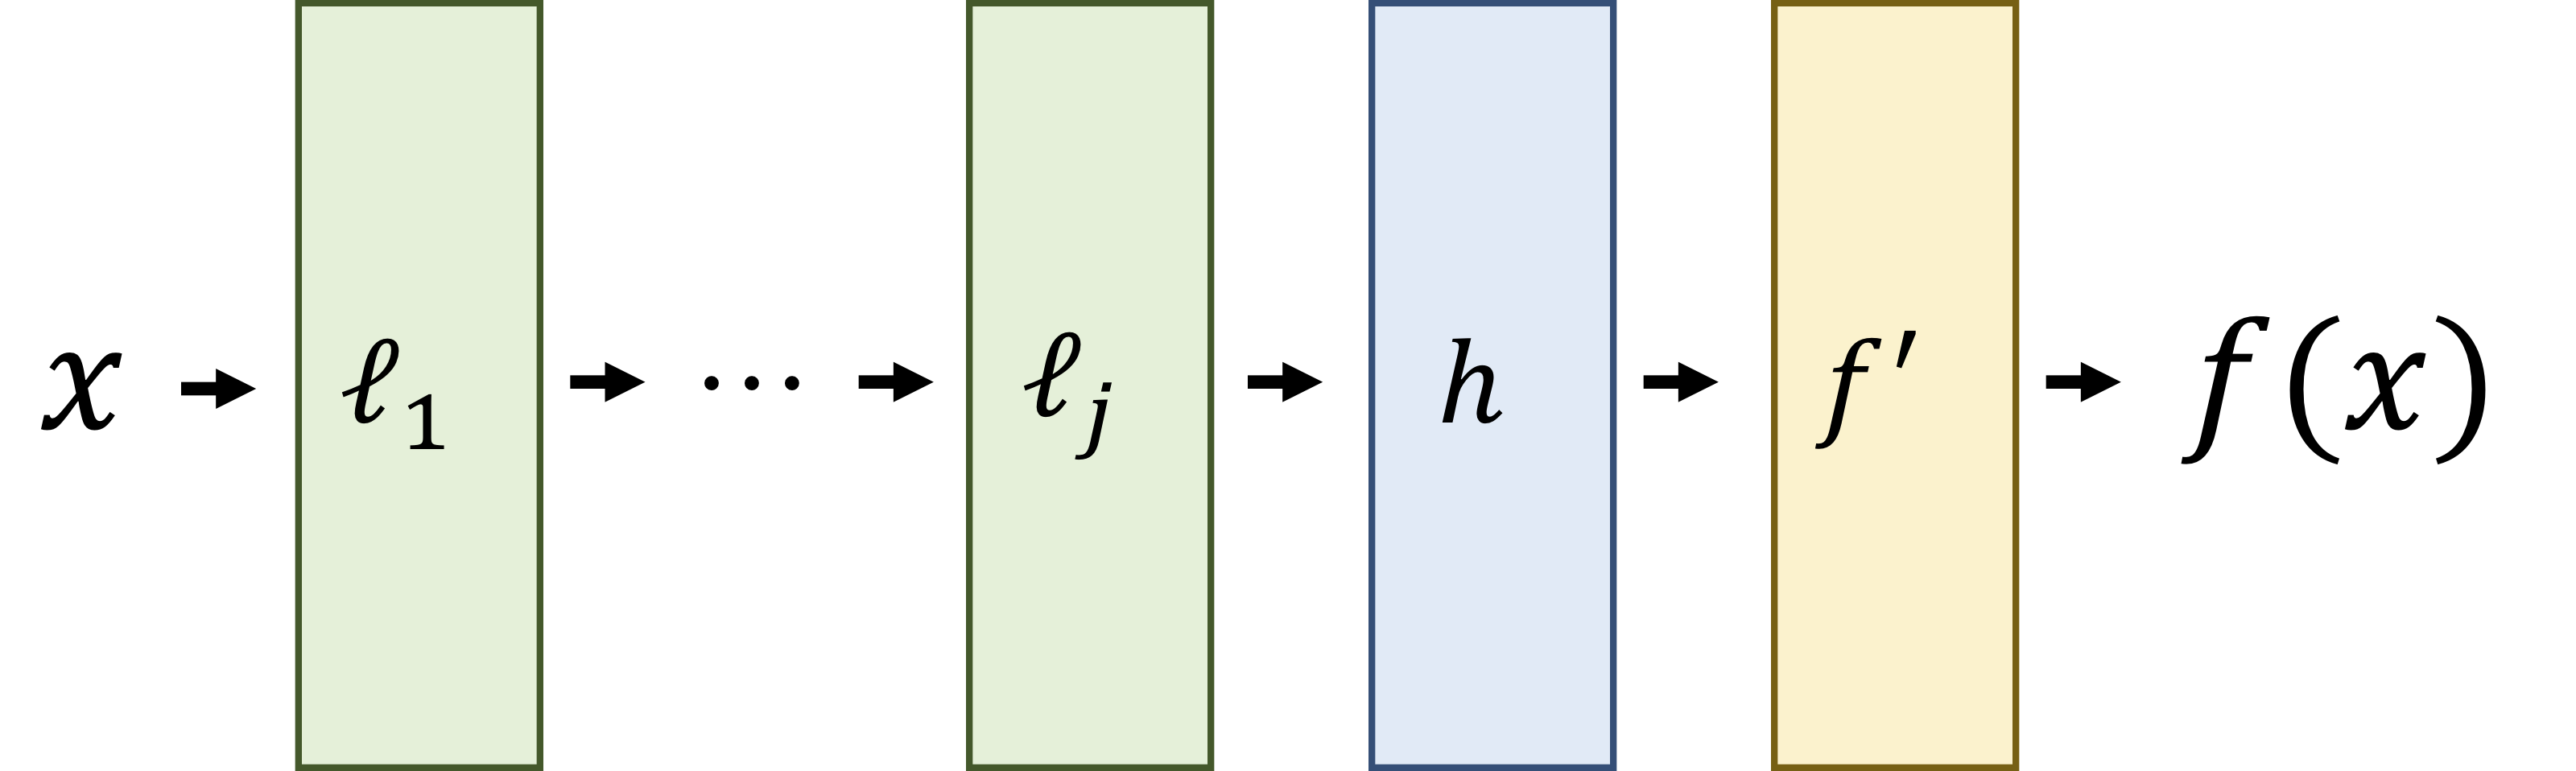 The invariant deep neural network by DeepSets (